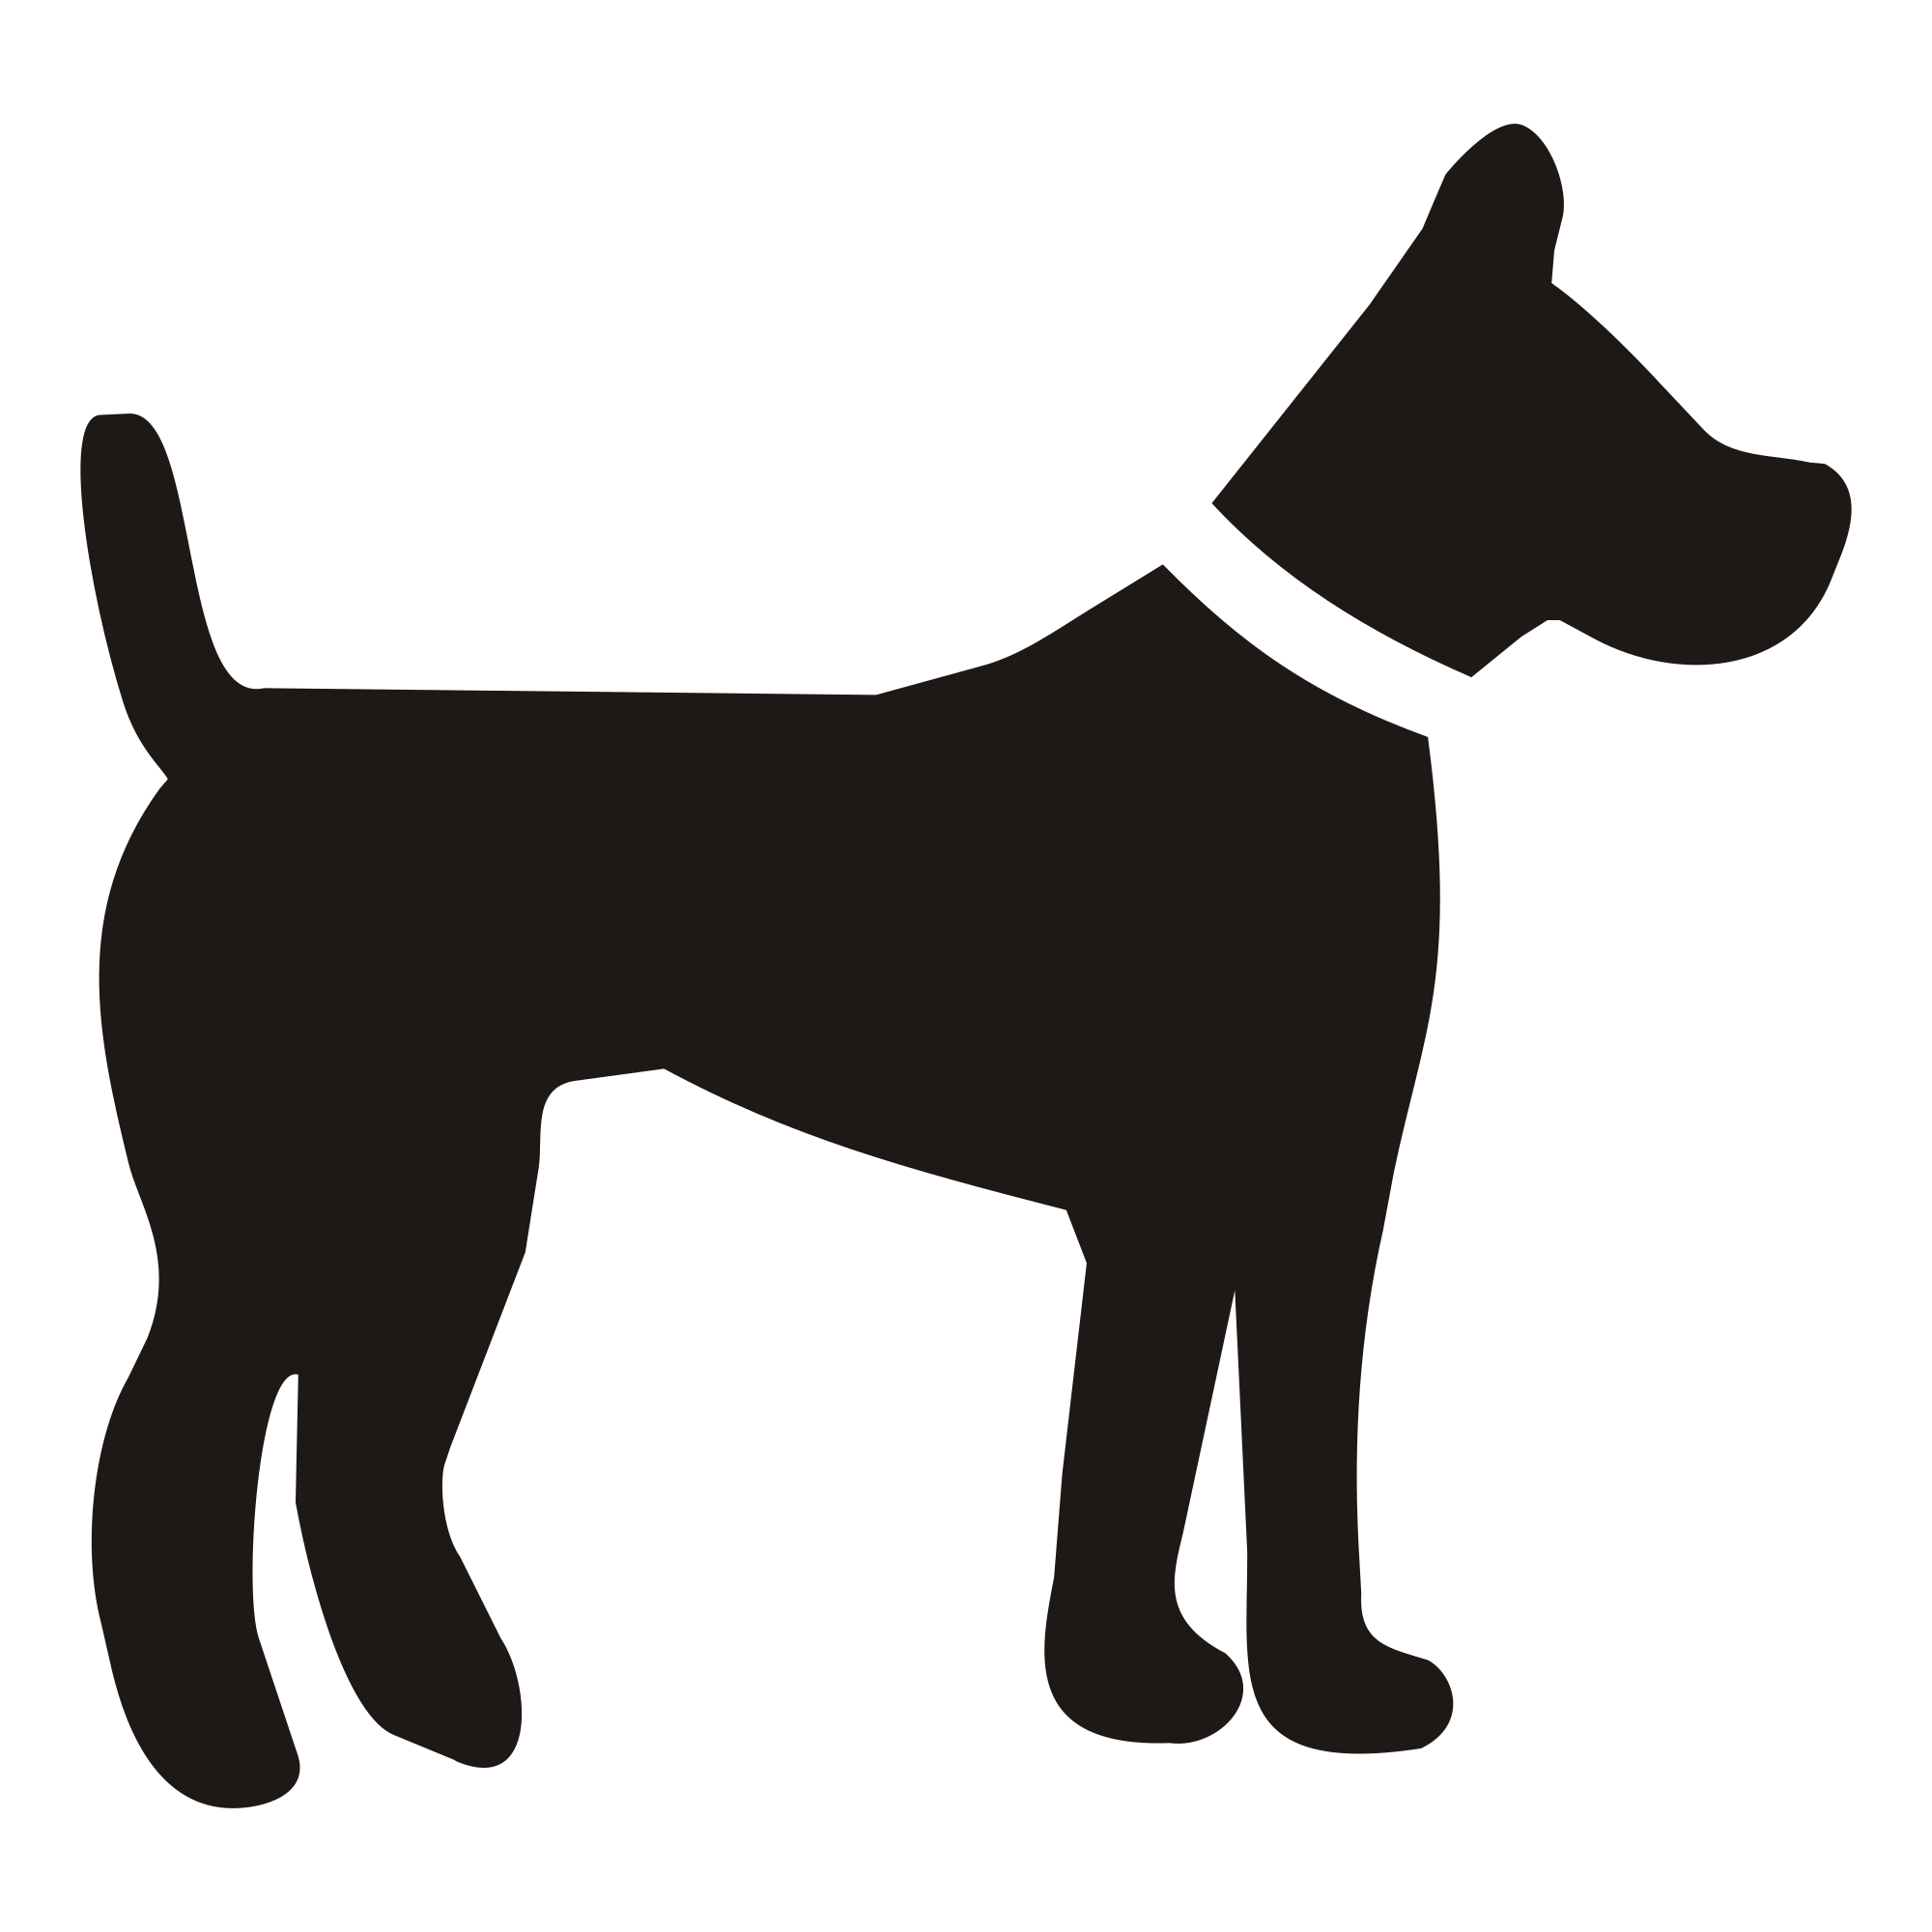 Clipart puppy svg. Dog silhouette at getdrawings